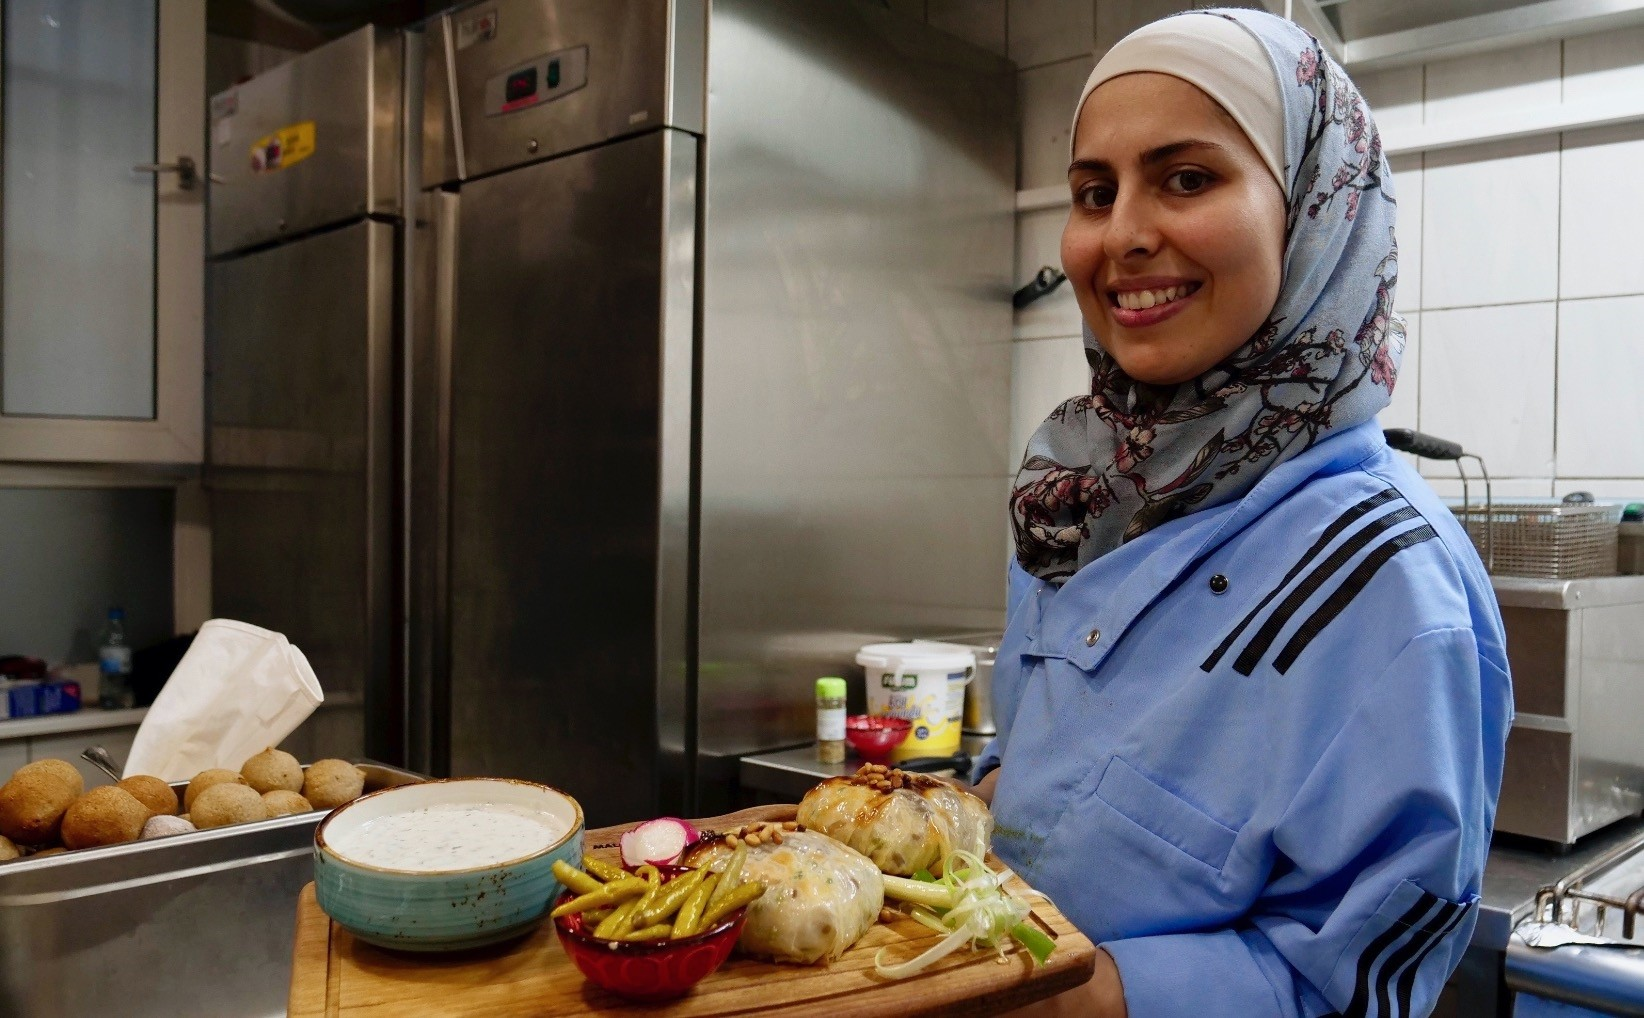 After fleeing her homelandu2019s civil war, Jazmati reinvented herself in Jordan as a TV chef and became known as the u201cqueen of cookingu201d to fellow Syrian refugees.